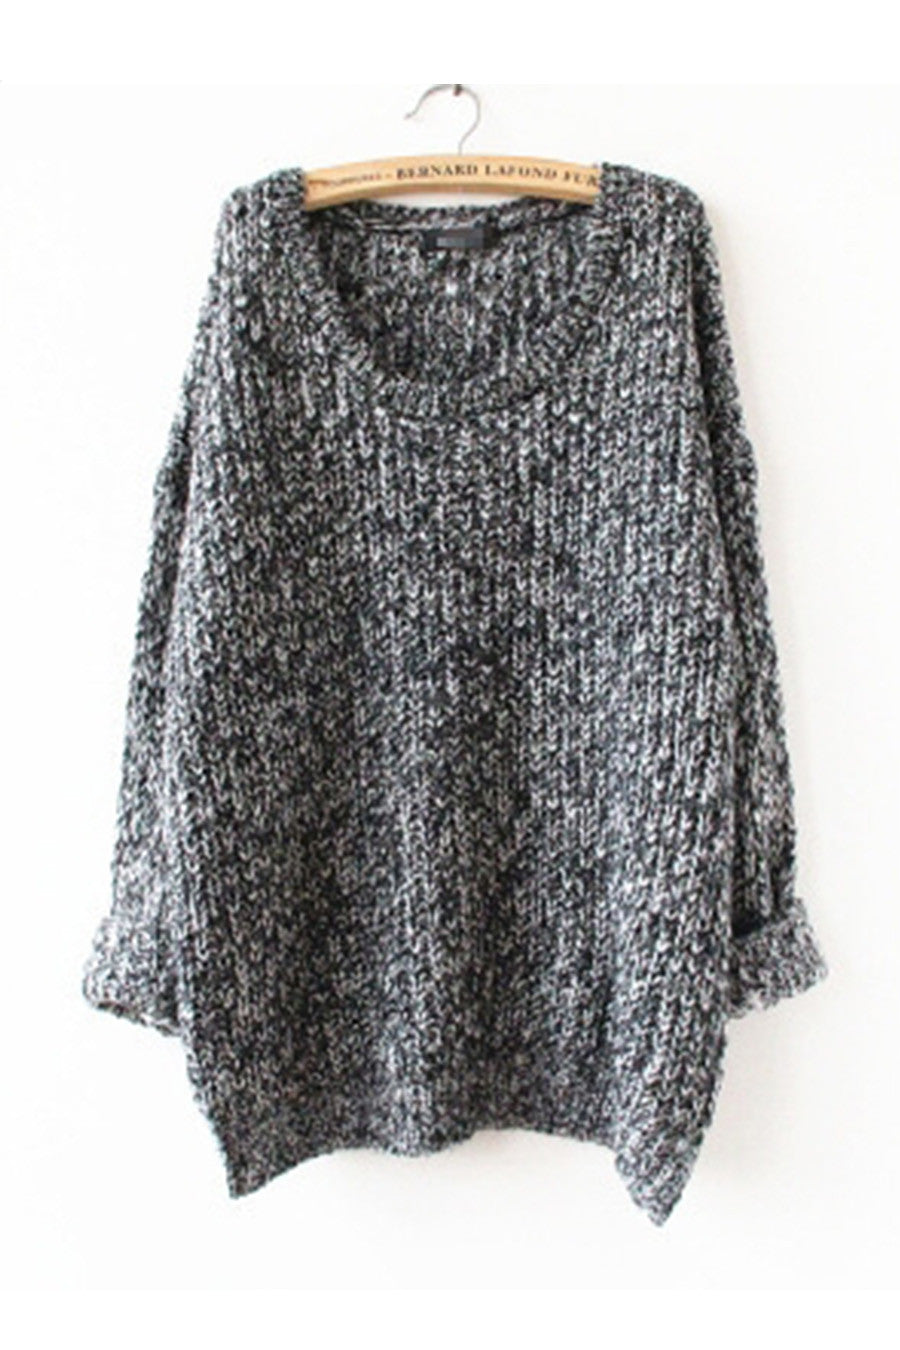 Vintage Gray Cosy Knit Sweater - Vintage Style Sweater